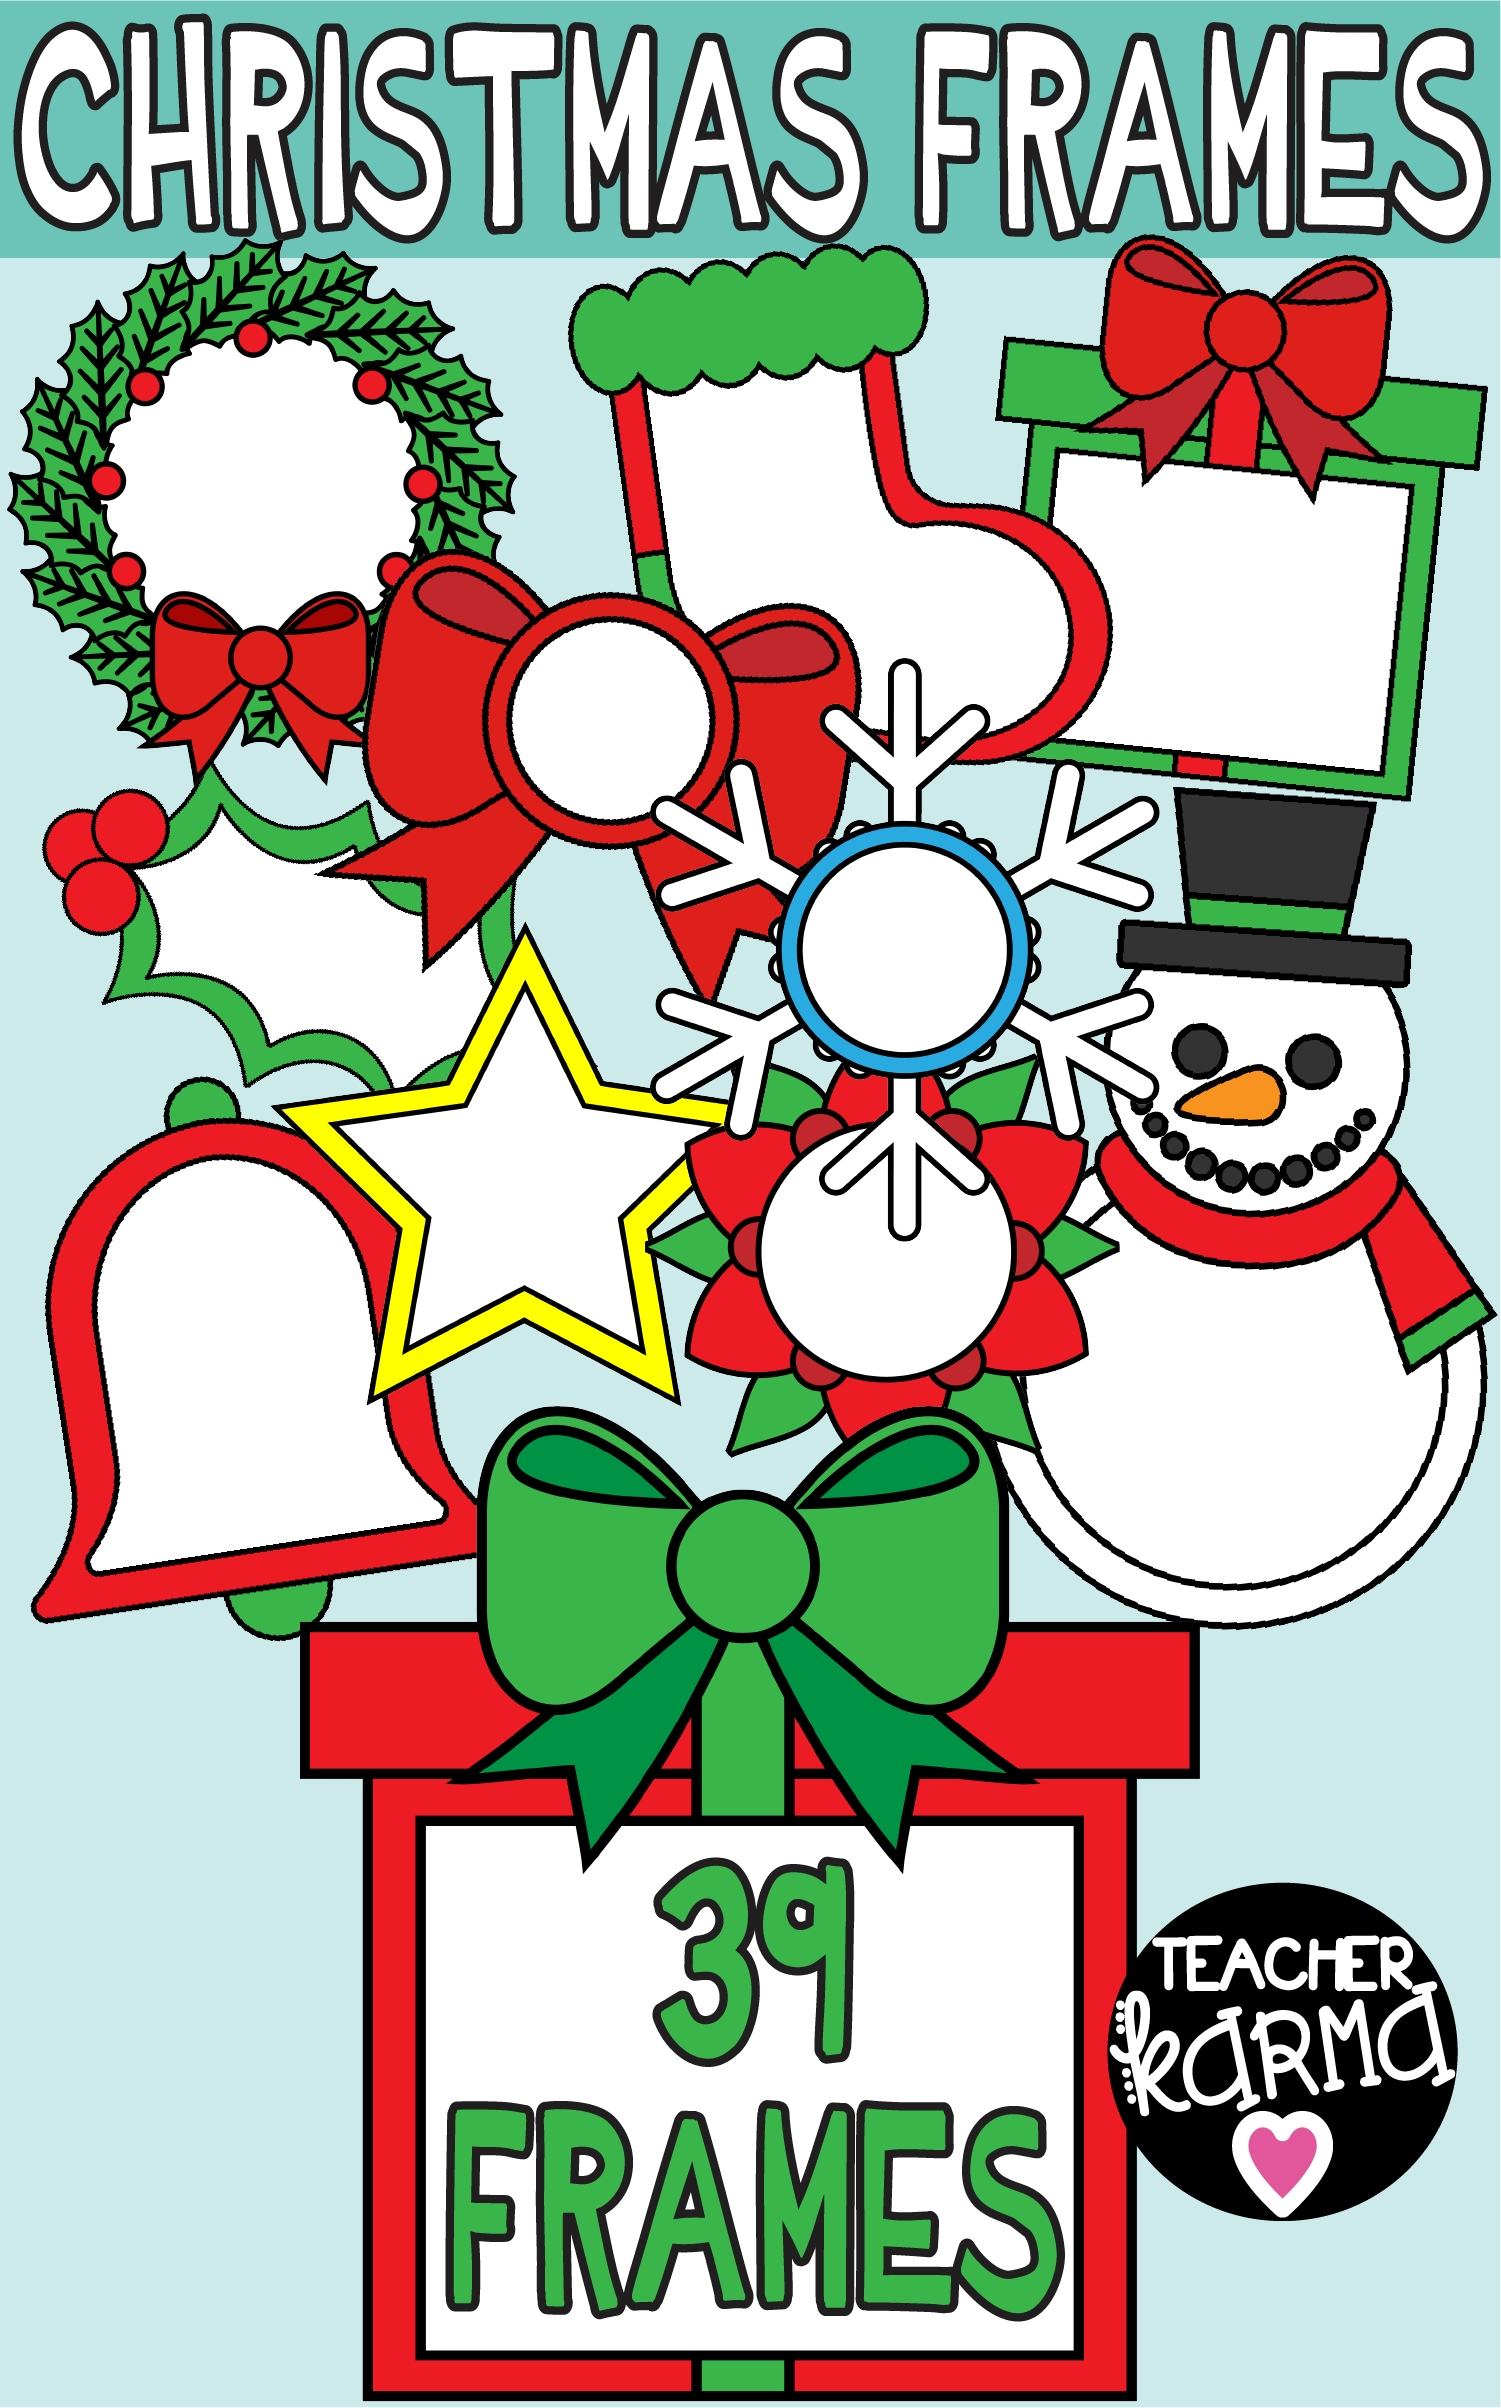 christmas frames clipart is perfect for your holiday resources these graphics work for tpt sellers [ 1501 x 2408 Pixel ]